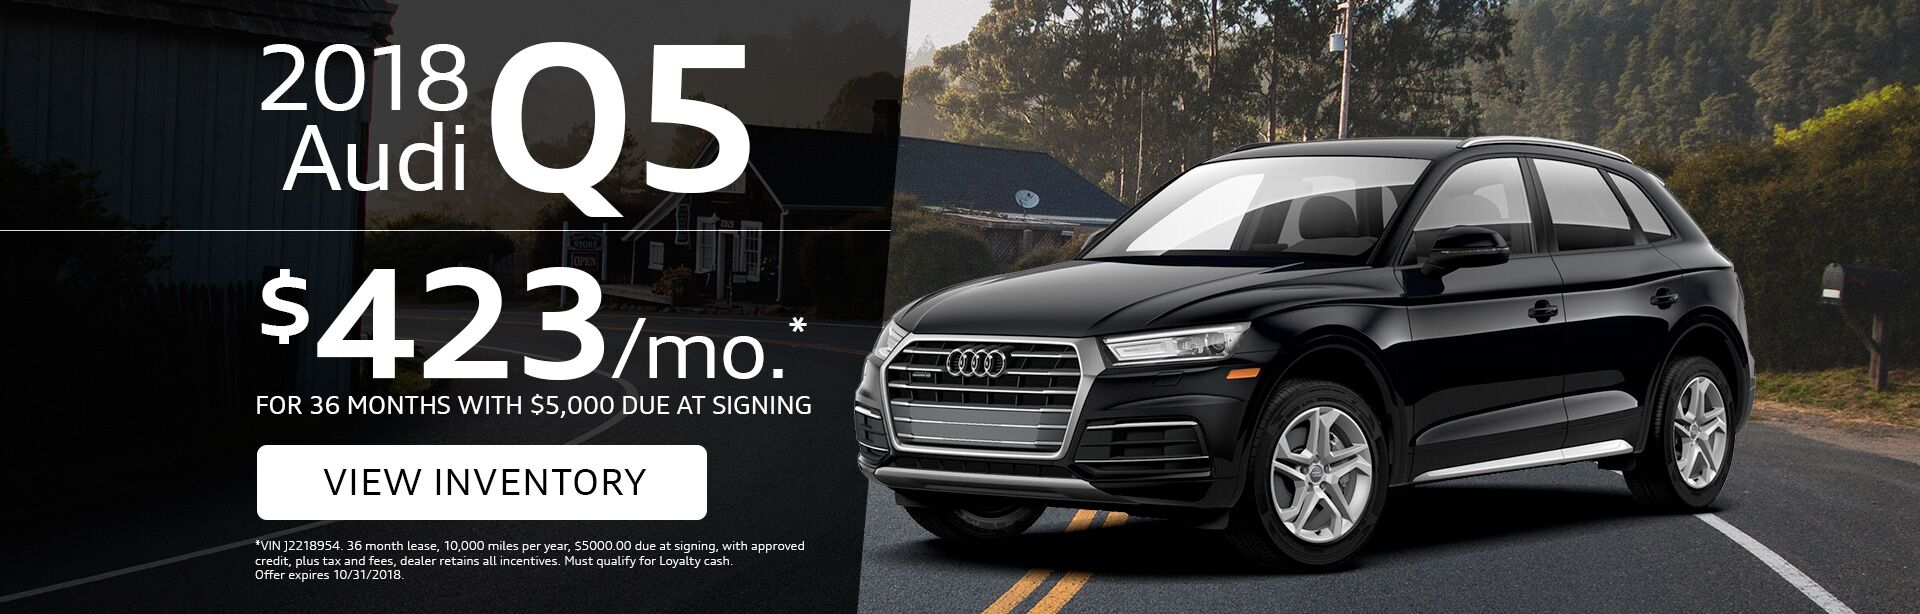 Audi Dealer In Bakersfield Serving All Kern County Audi Shoppers - Audi car loan interest rate